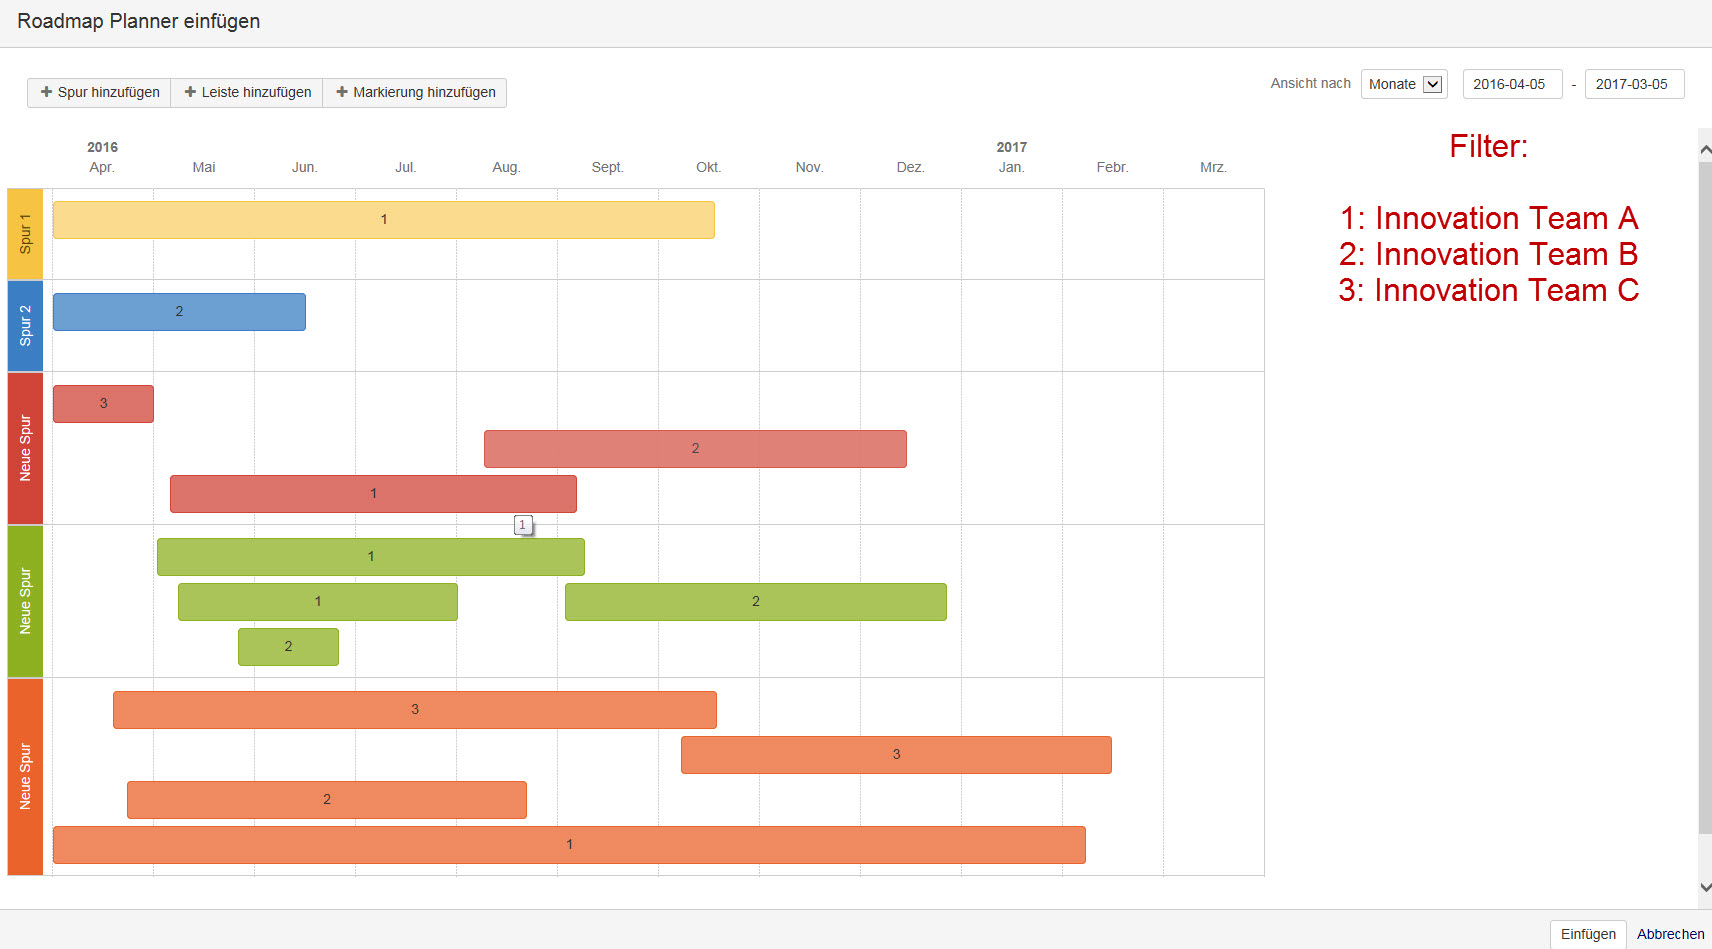 CONFSERVER Implementation Of Filter Features In Roadmap - Roadmap planner